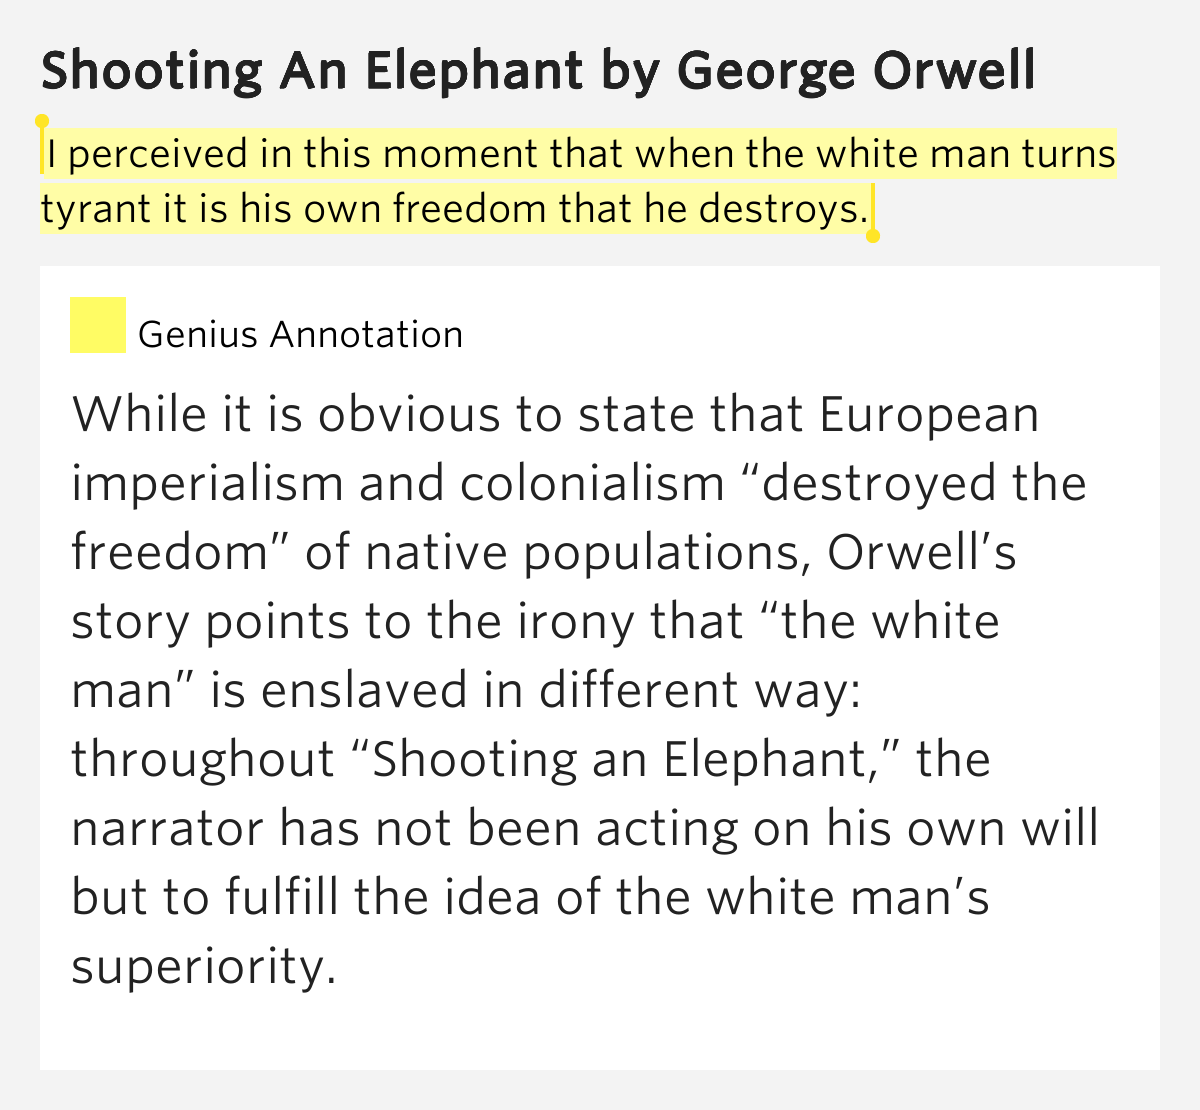 imperialism an irony shooting Shooting an elephant is an essay by english writer george orwell,  the story is regarded as a metaphor for british imperialism, and for orwell's view that when.